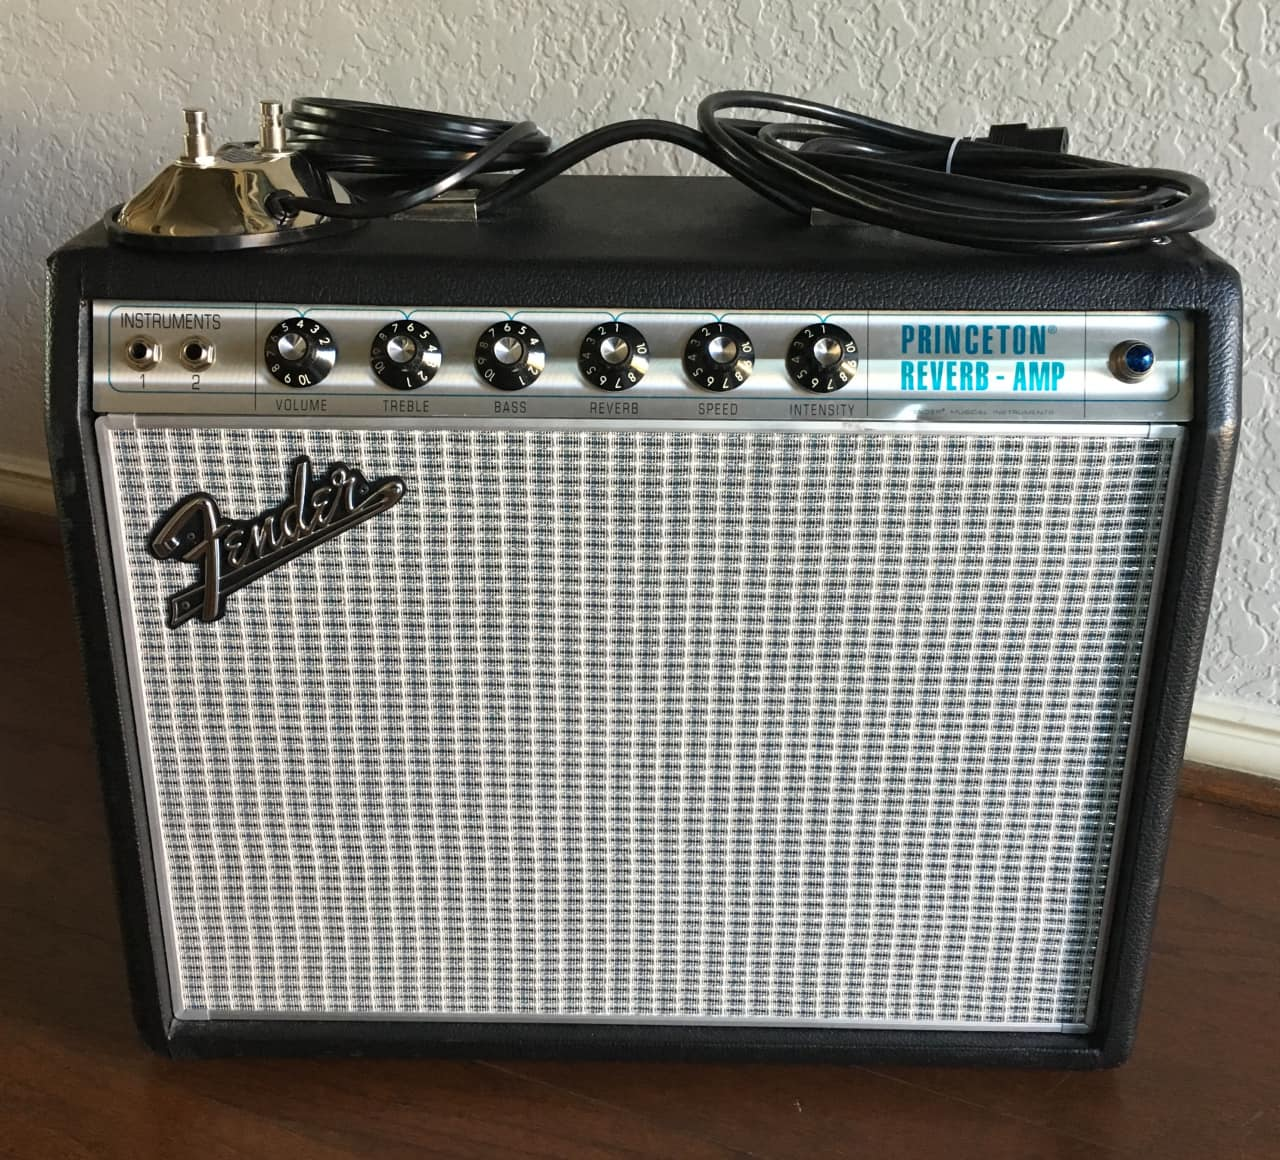 Fender Princeton reverb reissue Owners manual